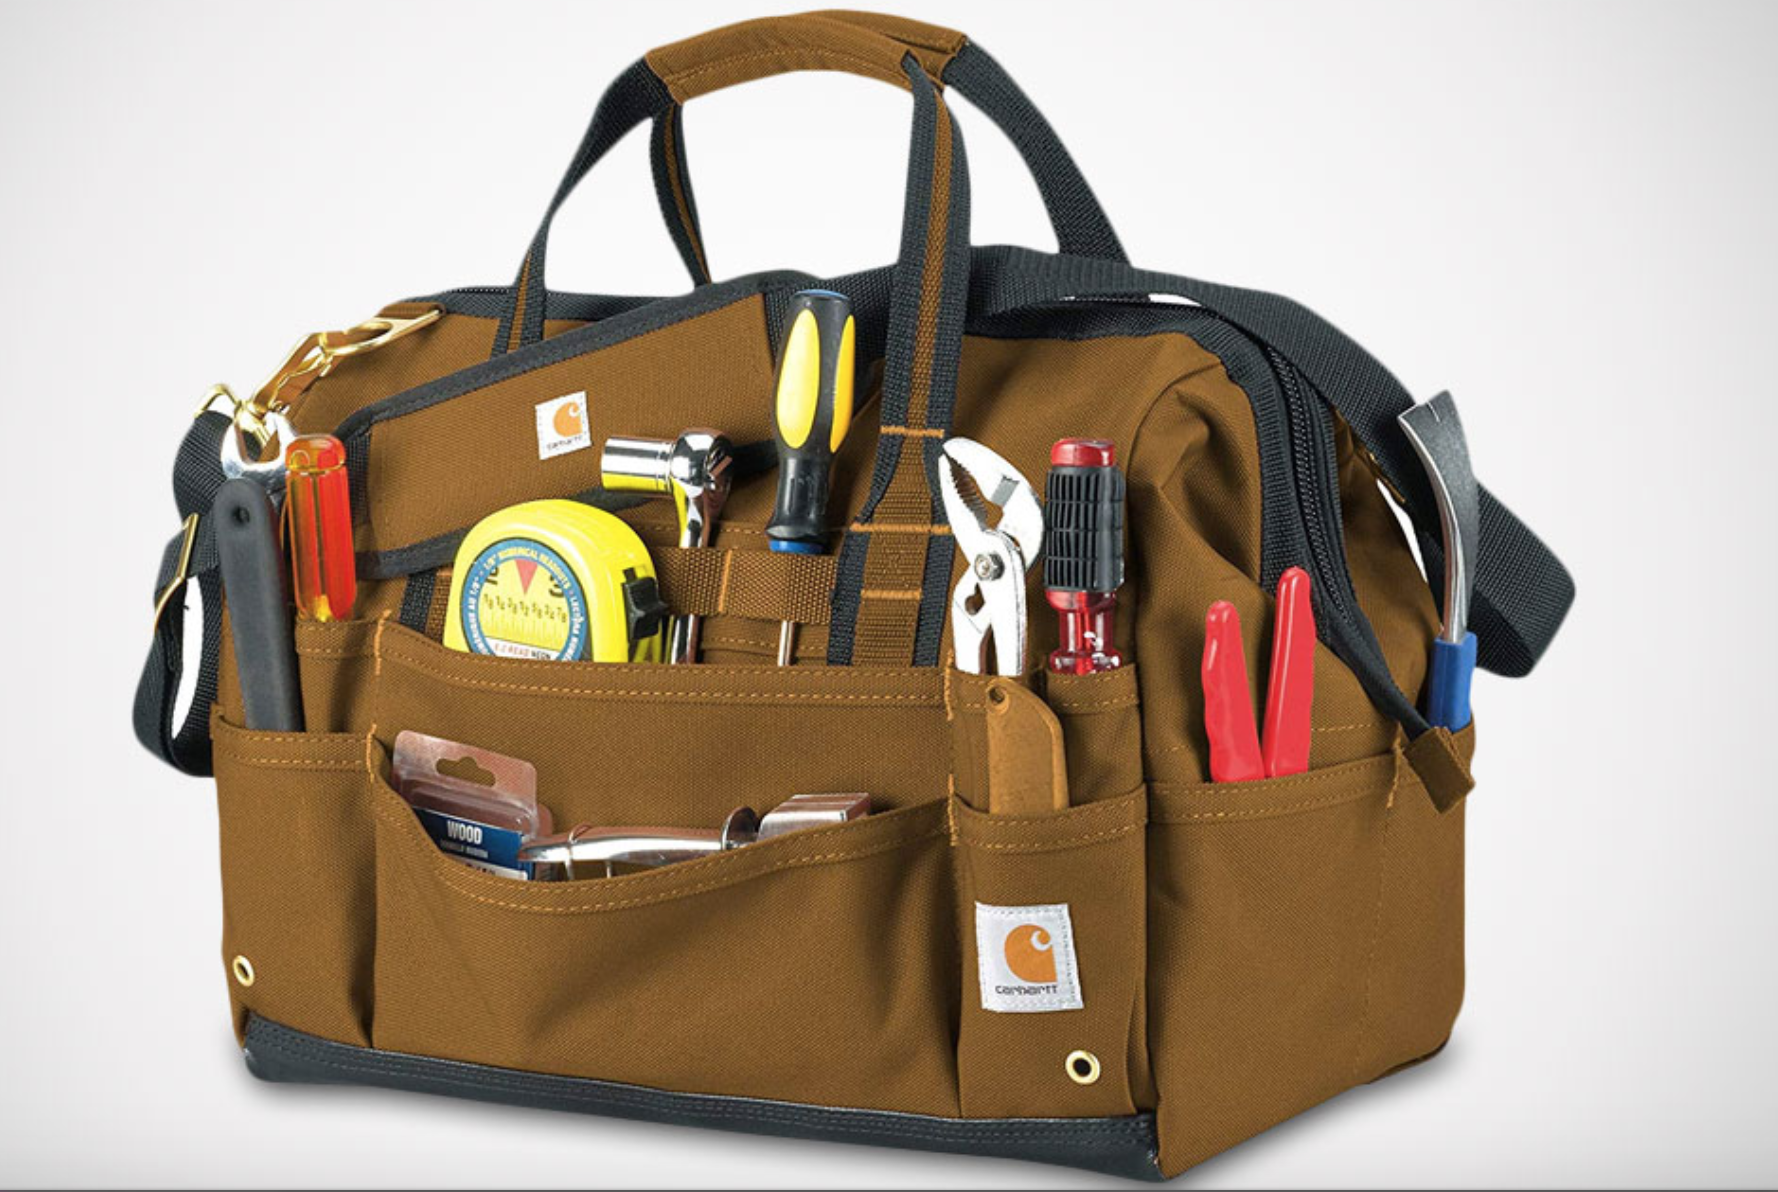 032d9495d7 Carhartt bags for all your gear | Truckers News